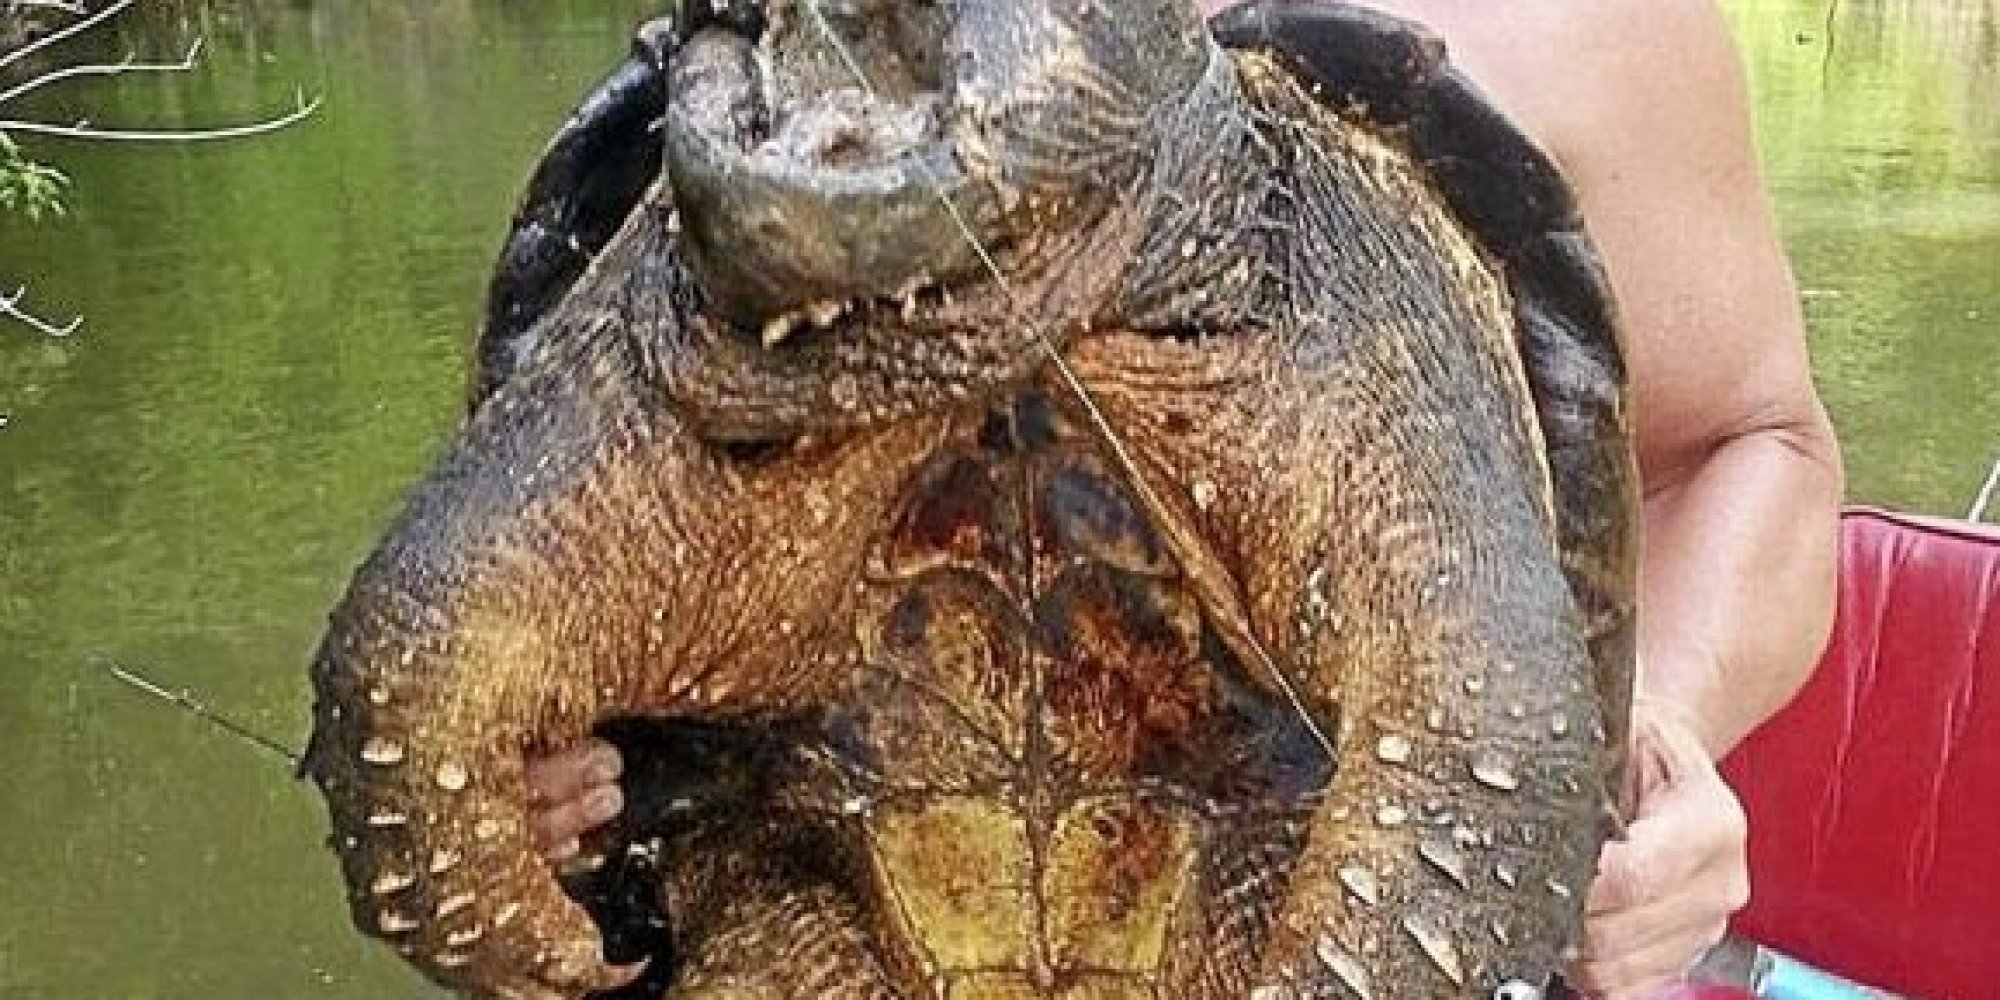 Alligator Snapping Turtle Tattoos O-giant-turtle-facebook.jpg